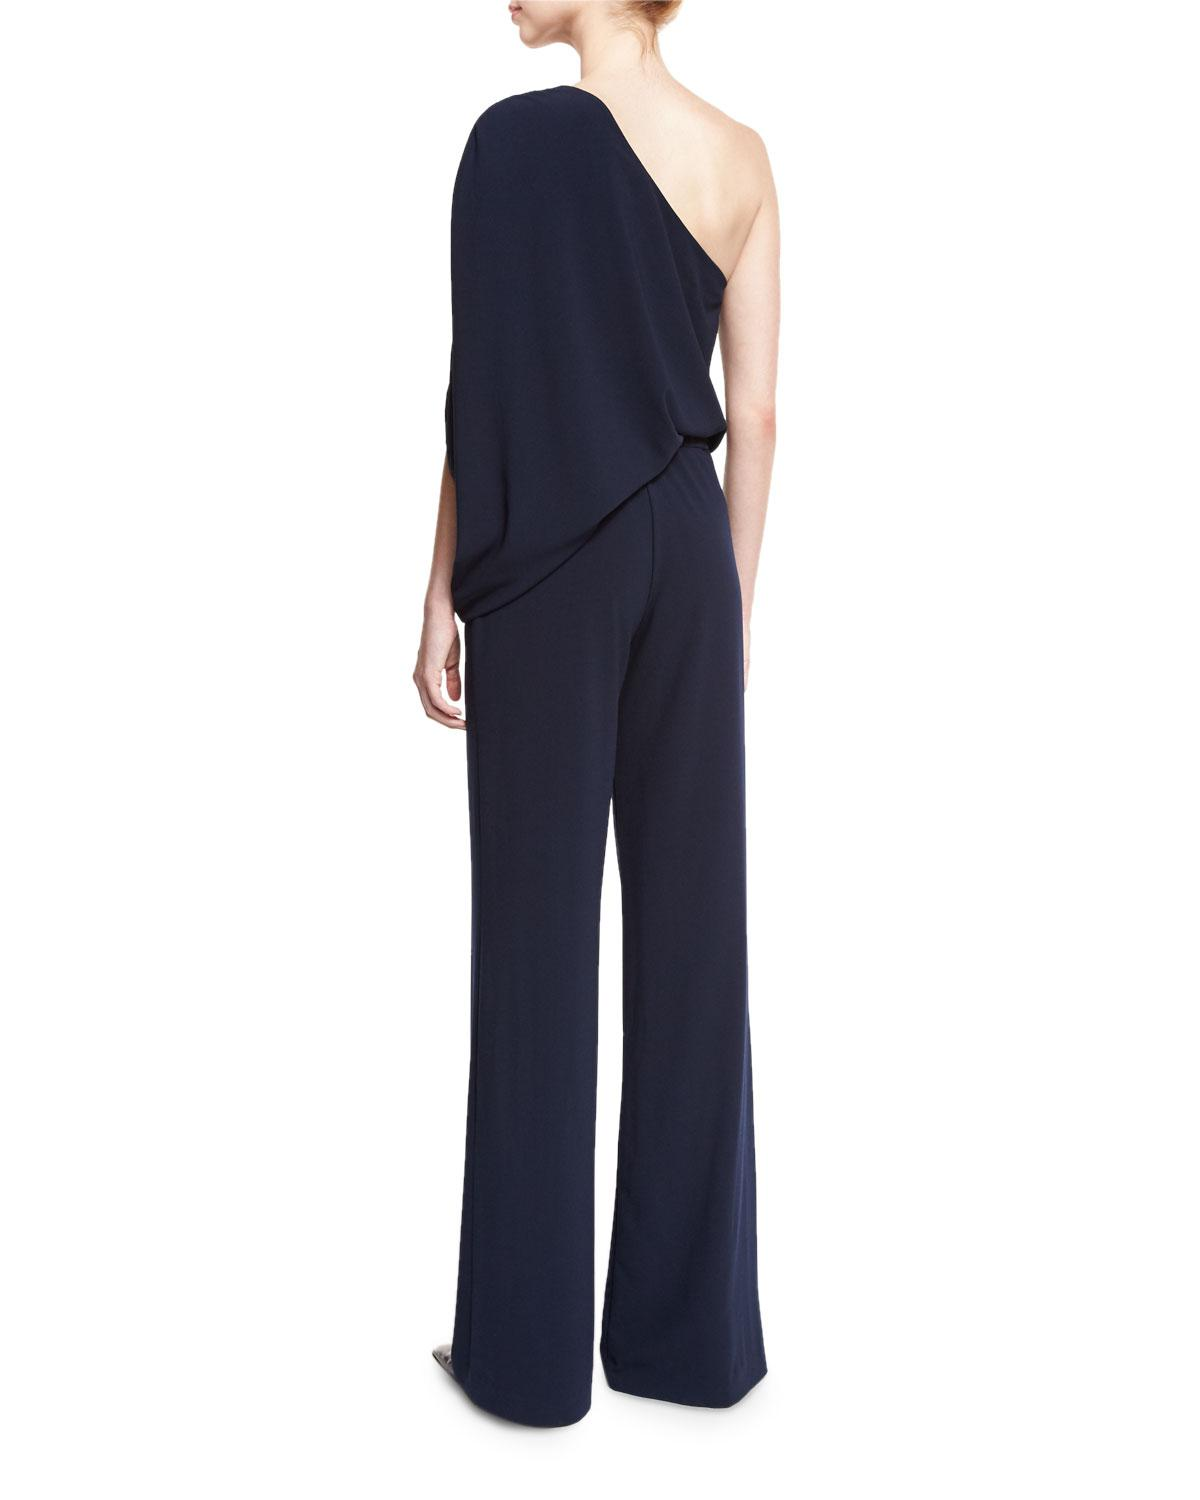 2ace1ef683d7 Lyst - Halston One-shoulder Draped Stretch Crepe Jumpsuit in Blue